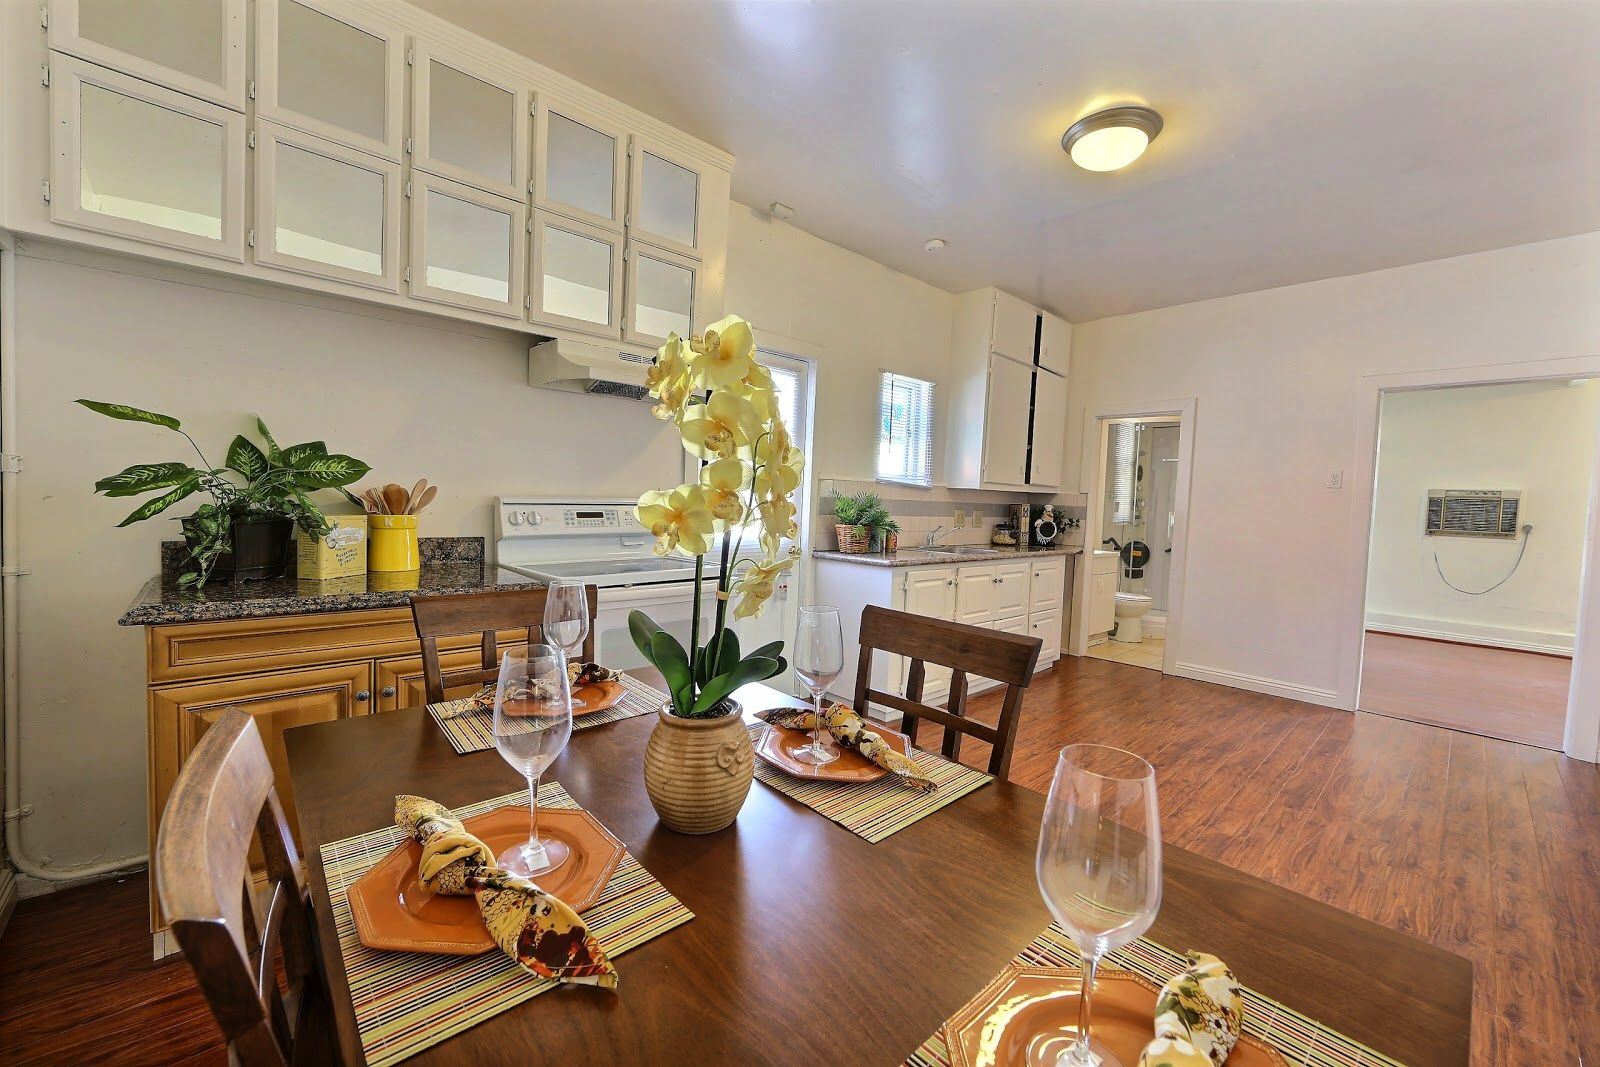 10+ Culver city single family homes for sale ideas